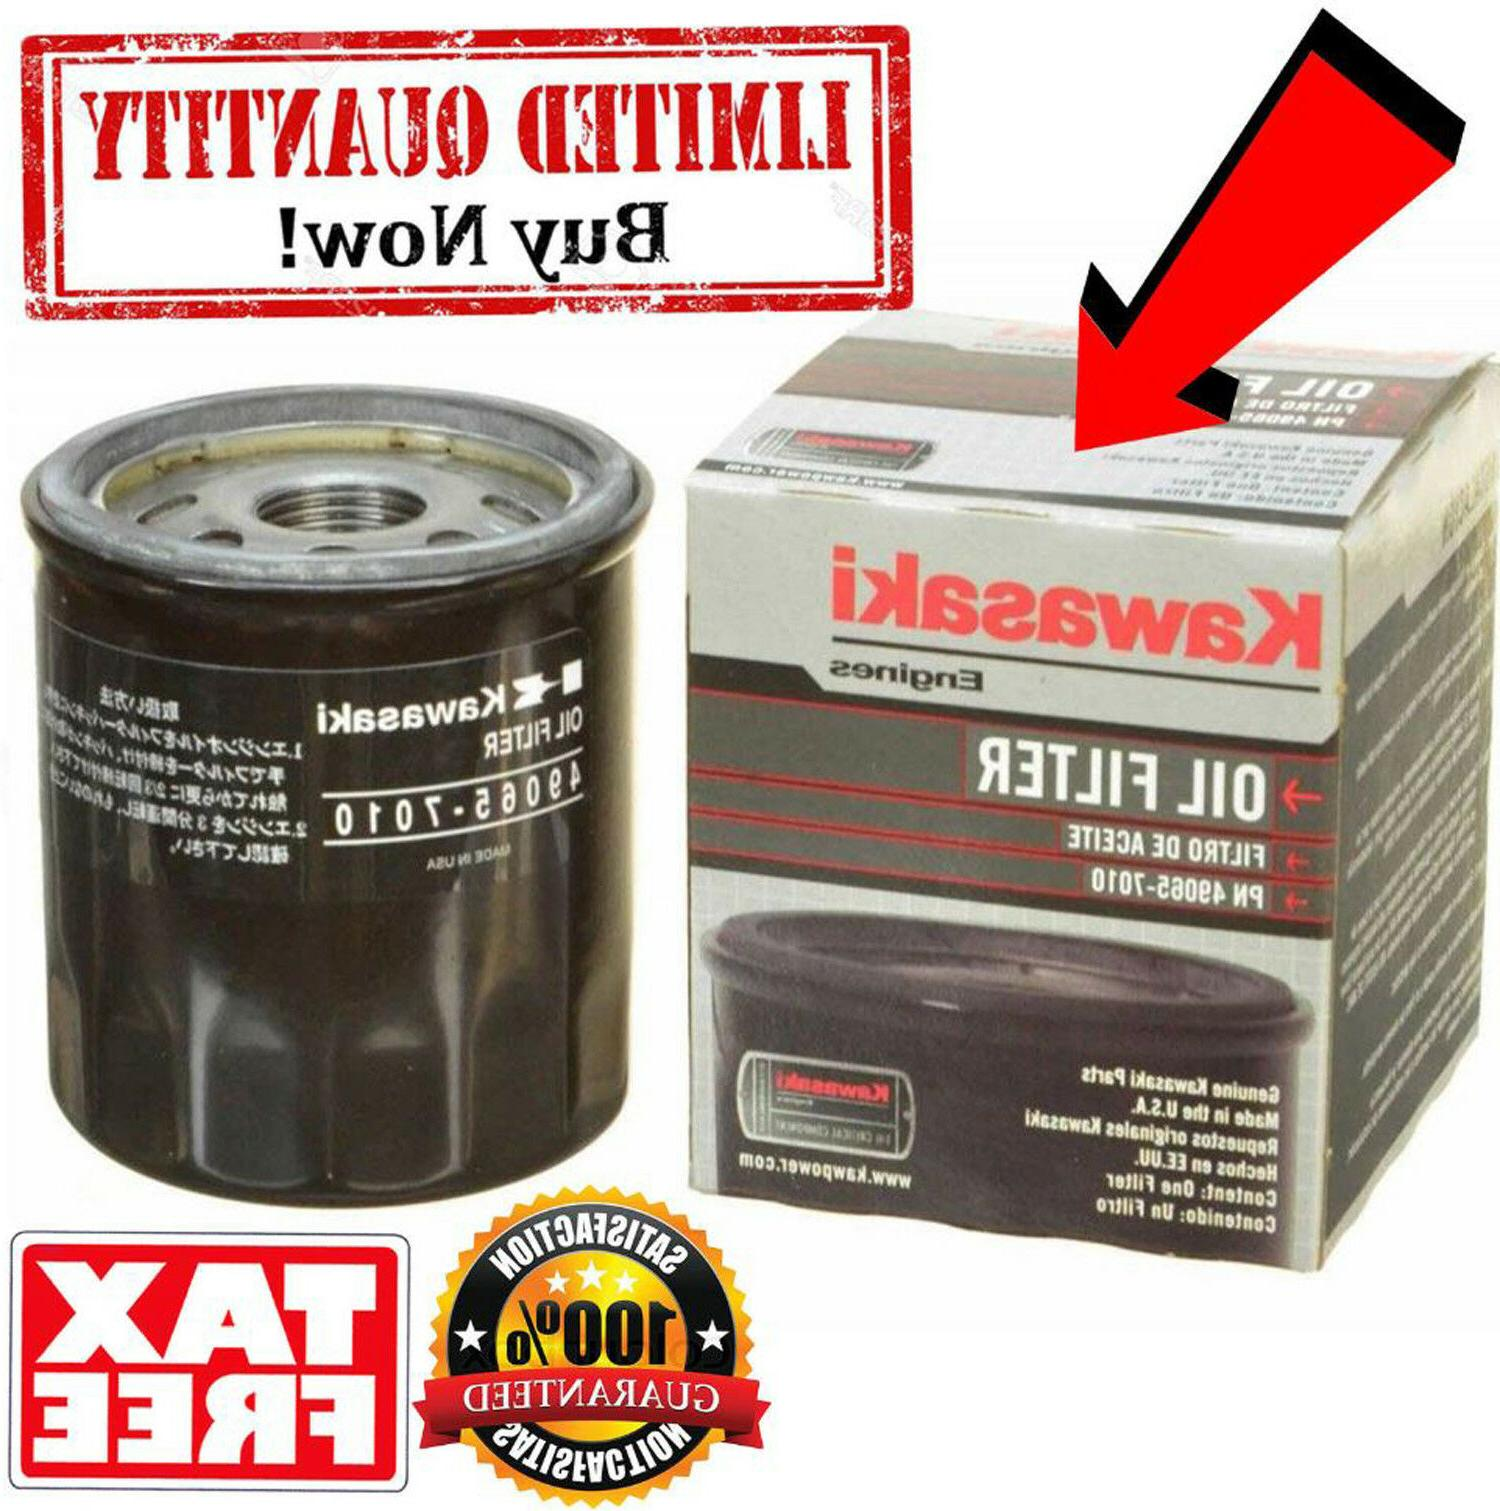 Kawasaki 49065-7010 Oil Filter for Mule 610 XC Scag Toro Cub